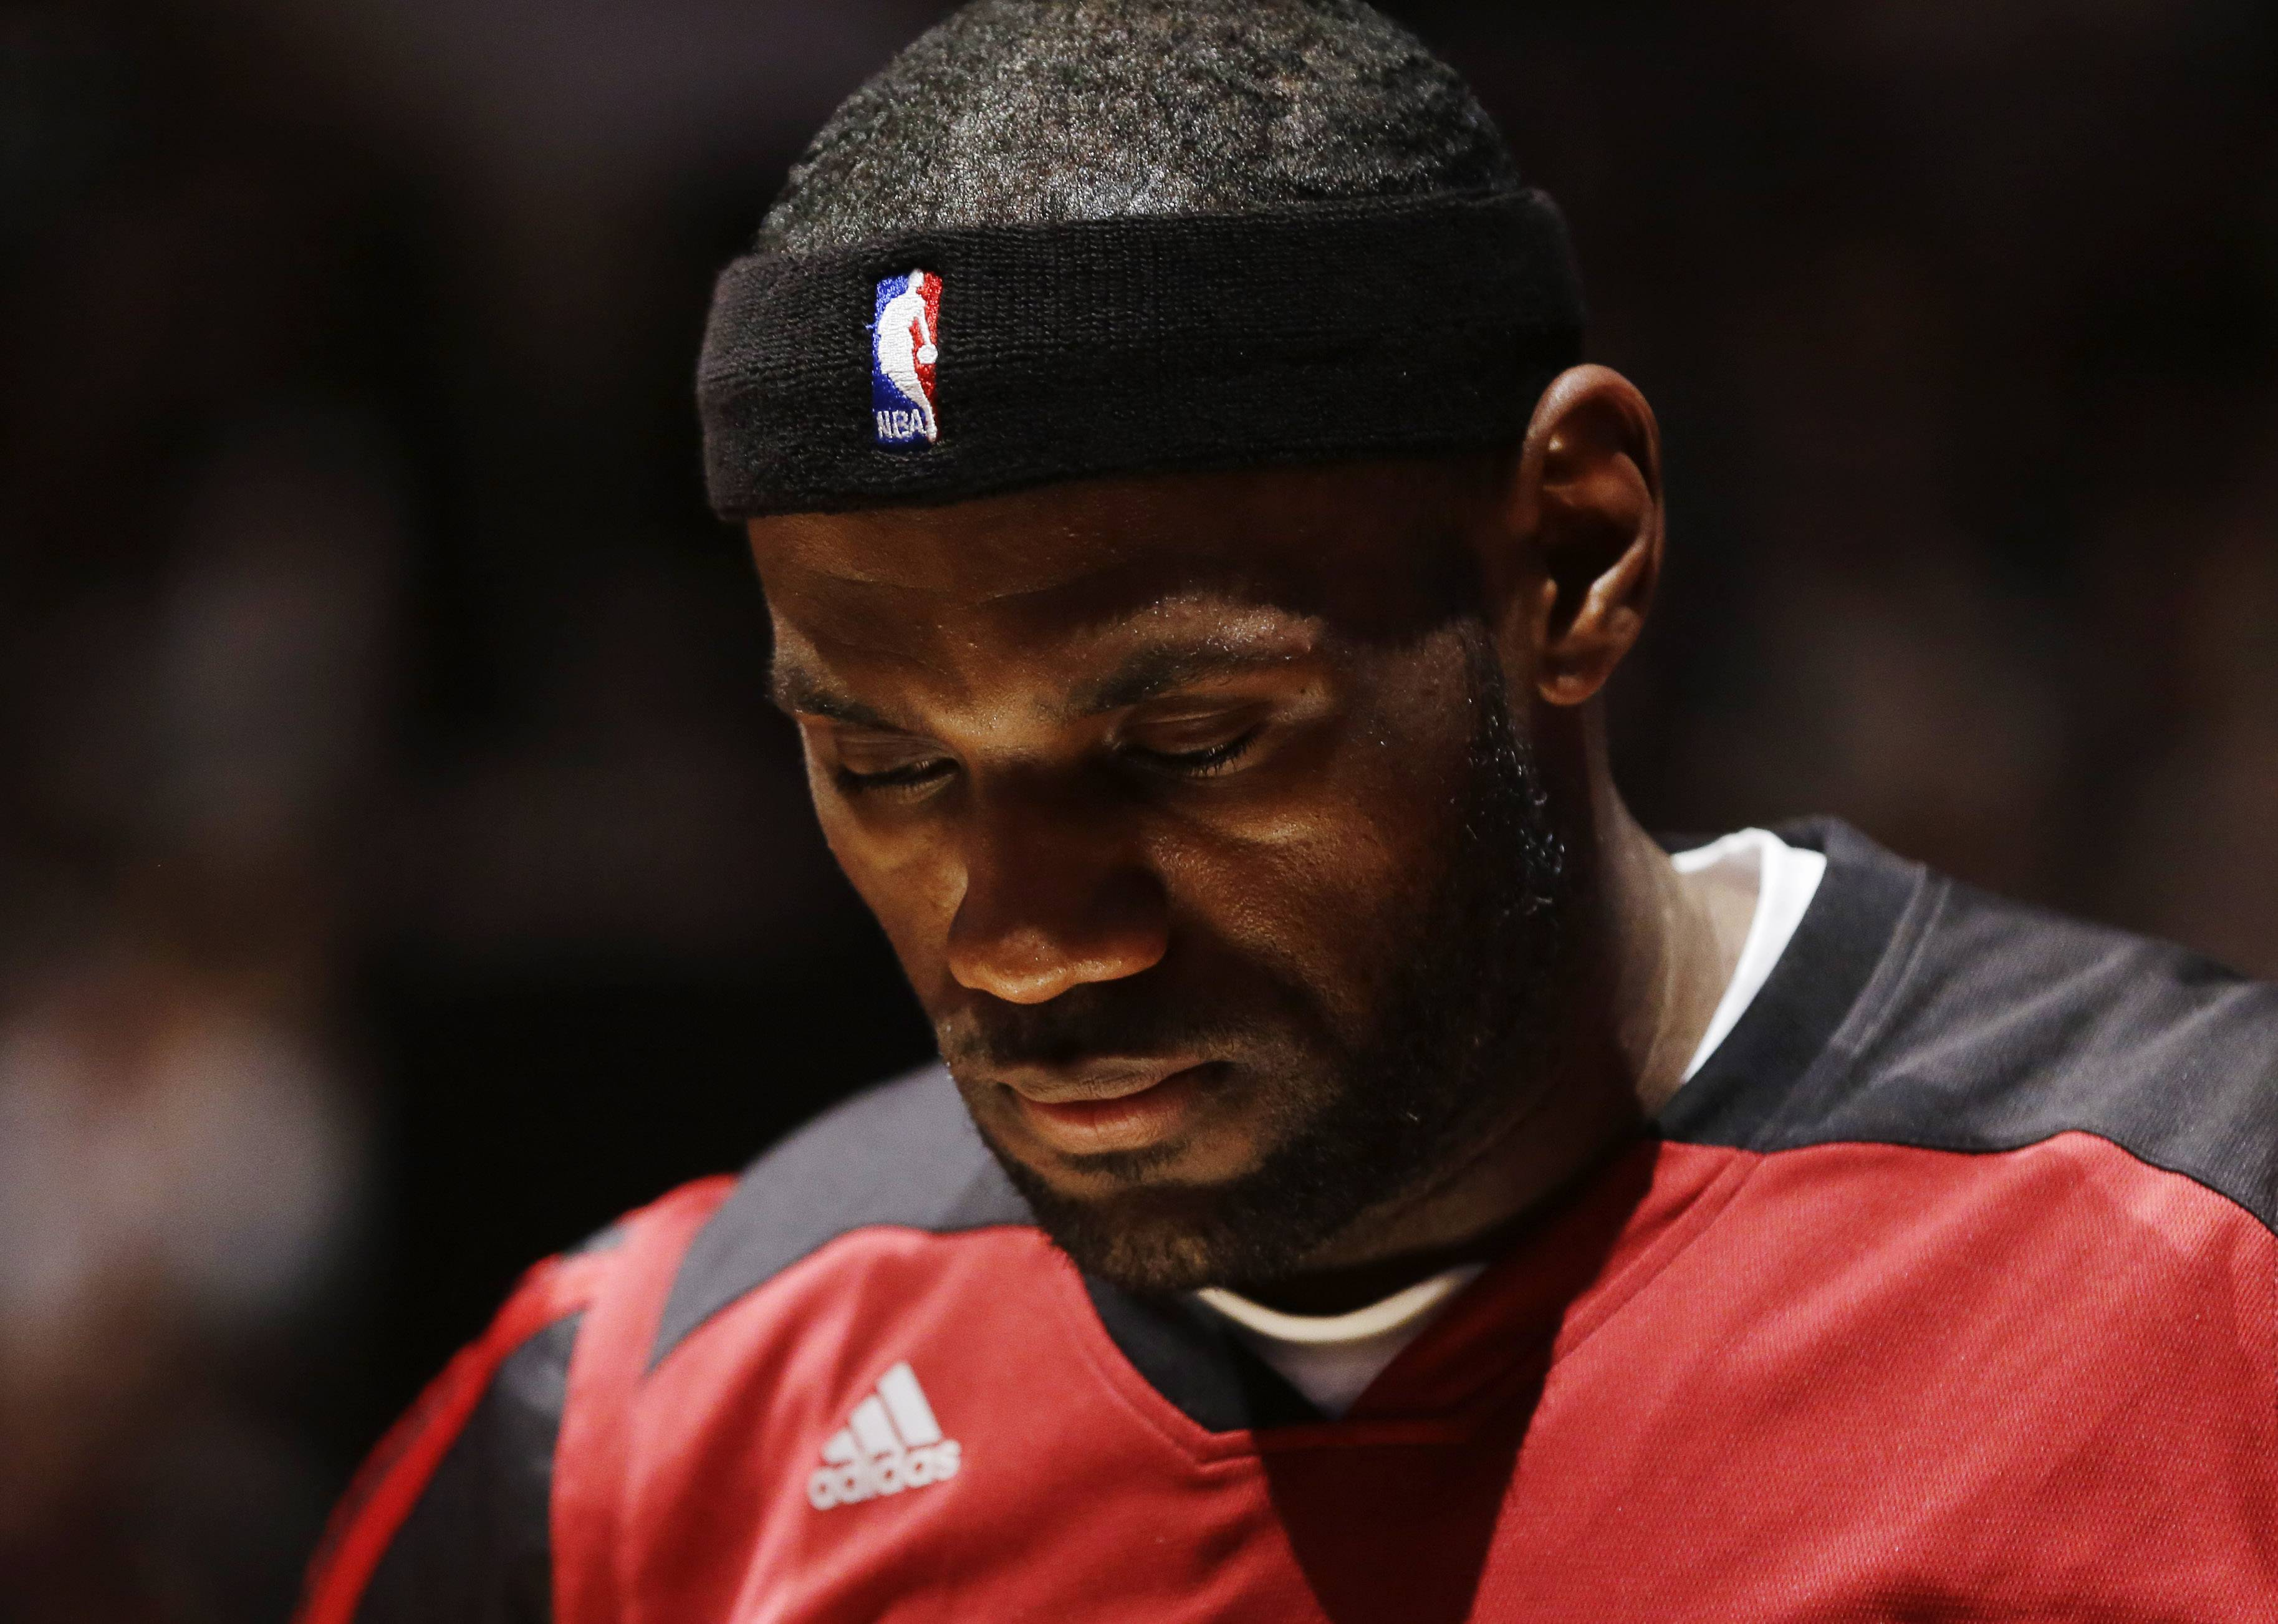 Miami Heat forward LeBron James waits for the beginning of Game 5 of the NBA basketball finals against the San Antonio Spurs on Sunday, June 15, 2014, in San Antonio.